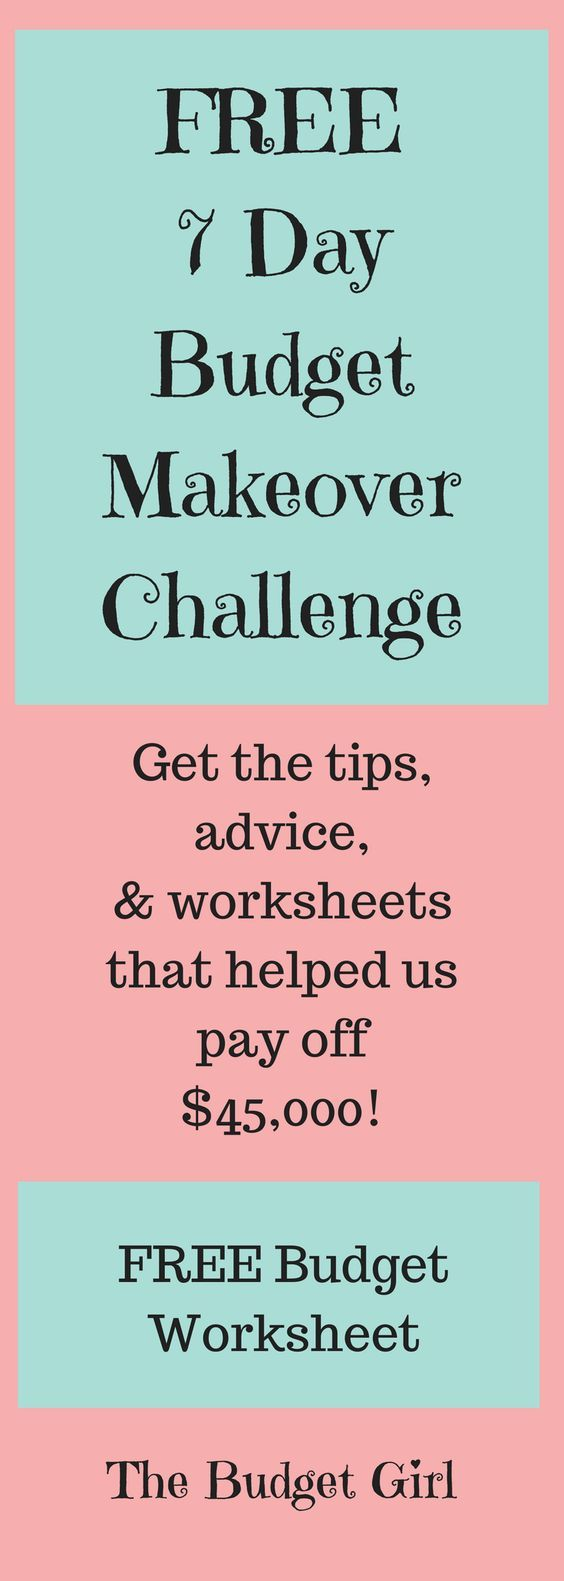 Free budget worksheet budget printable how to budget for beginners free budget worksheet budget printable how to budget for beginners save money tips payoff debt fast ibookread ePUb